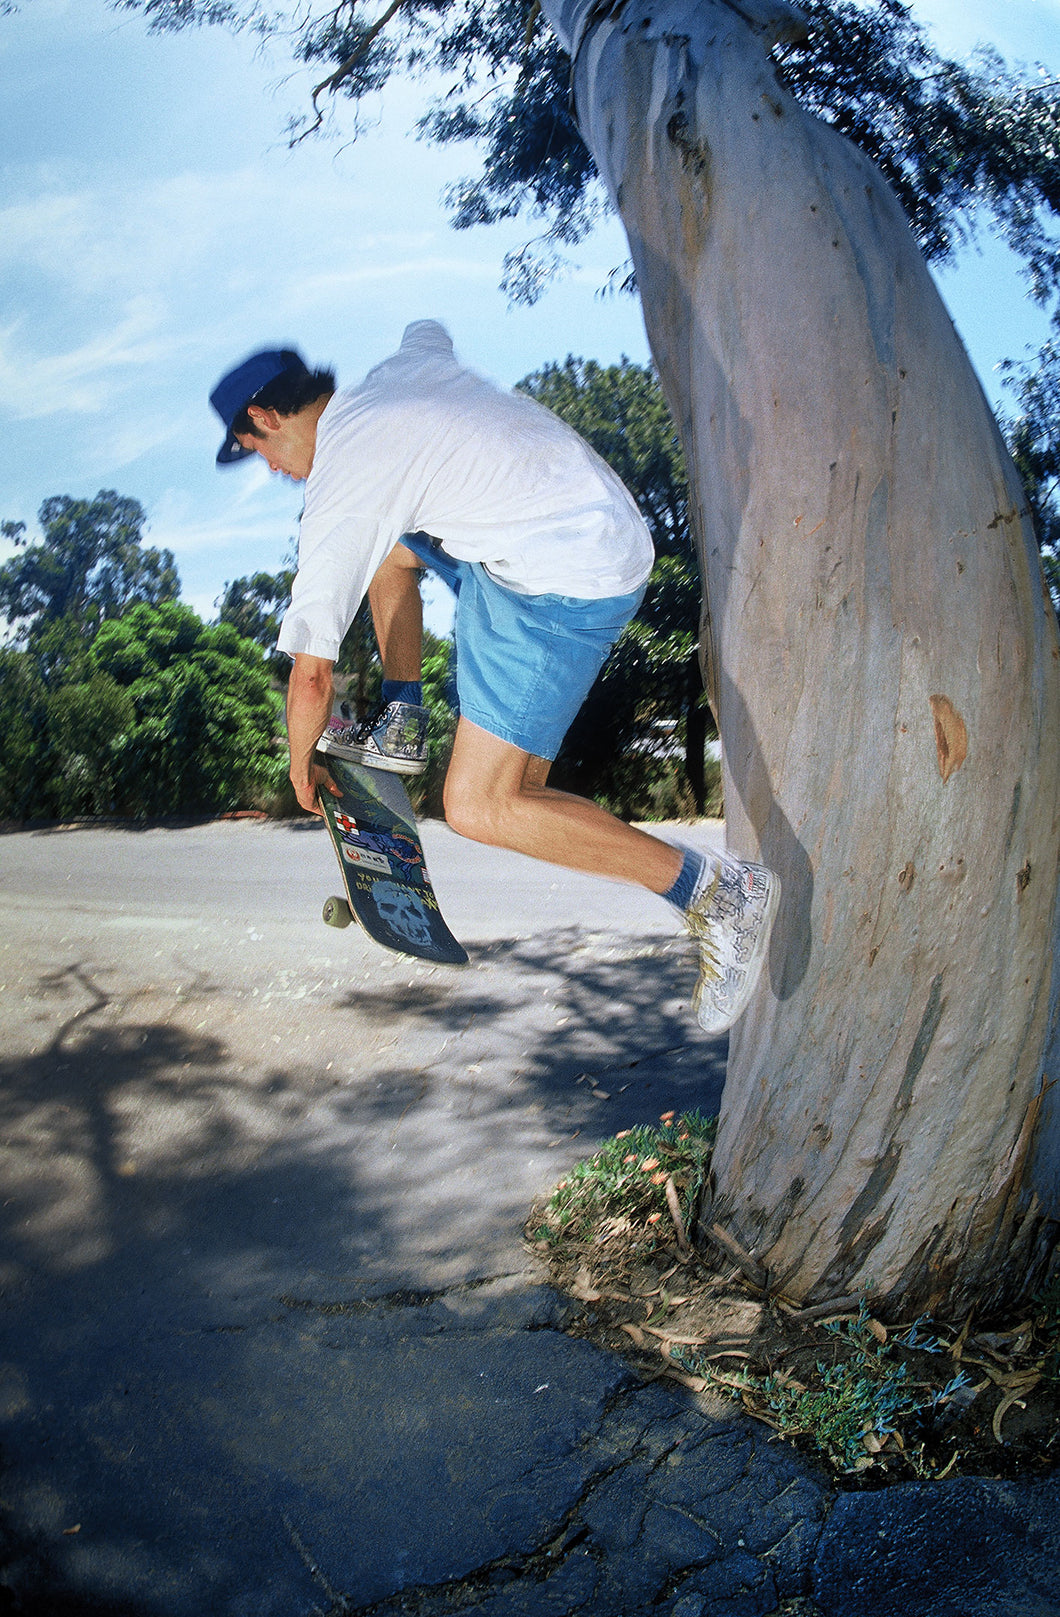 Mark Gonzales Tree Indy Fast Plant Laguna Beach 1988 Number 2 of 4